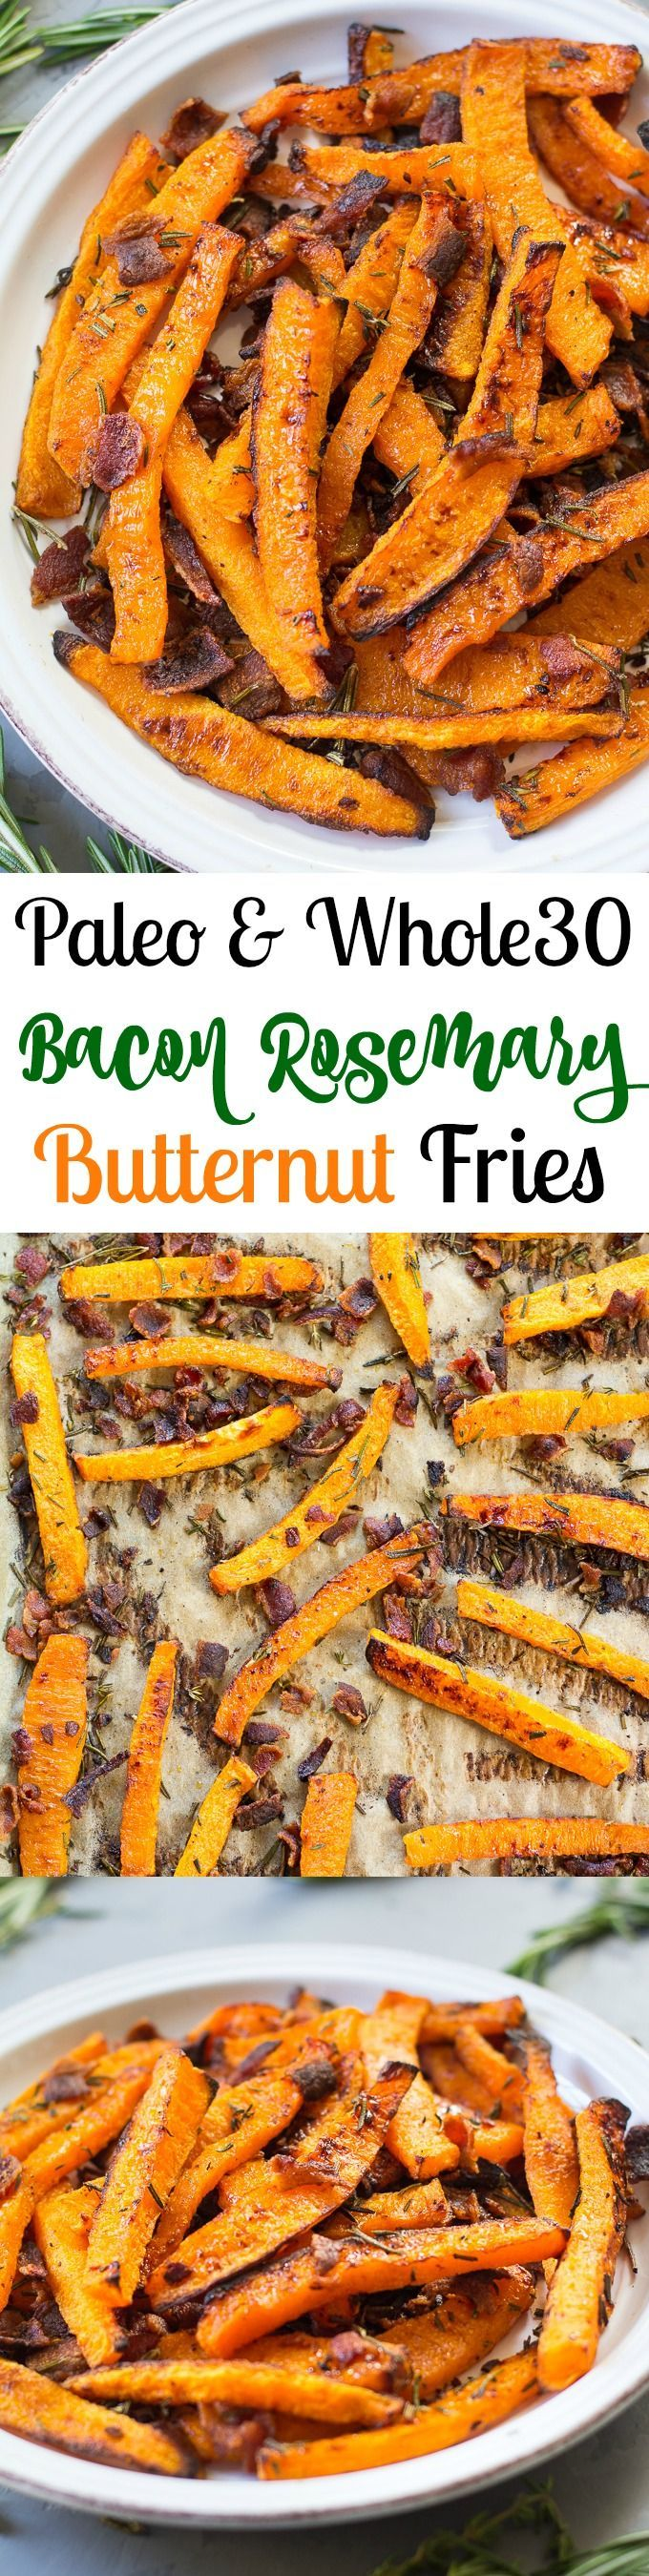 Paleo & Whole30 Rosemary bacon butternut squash fries that are incredibly addicting!  Simple to make and the method and timing create the perfect amount of crispiness.  Great holiday side dish or for anytime!